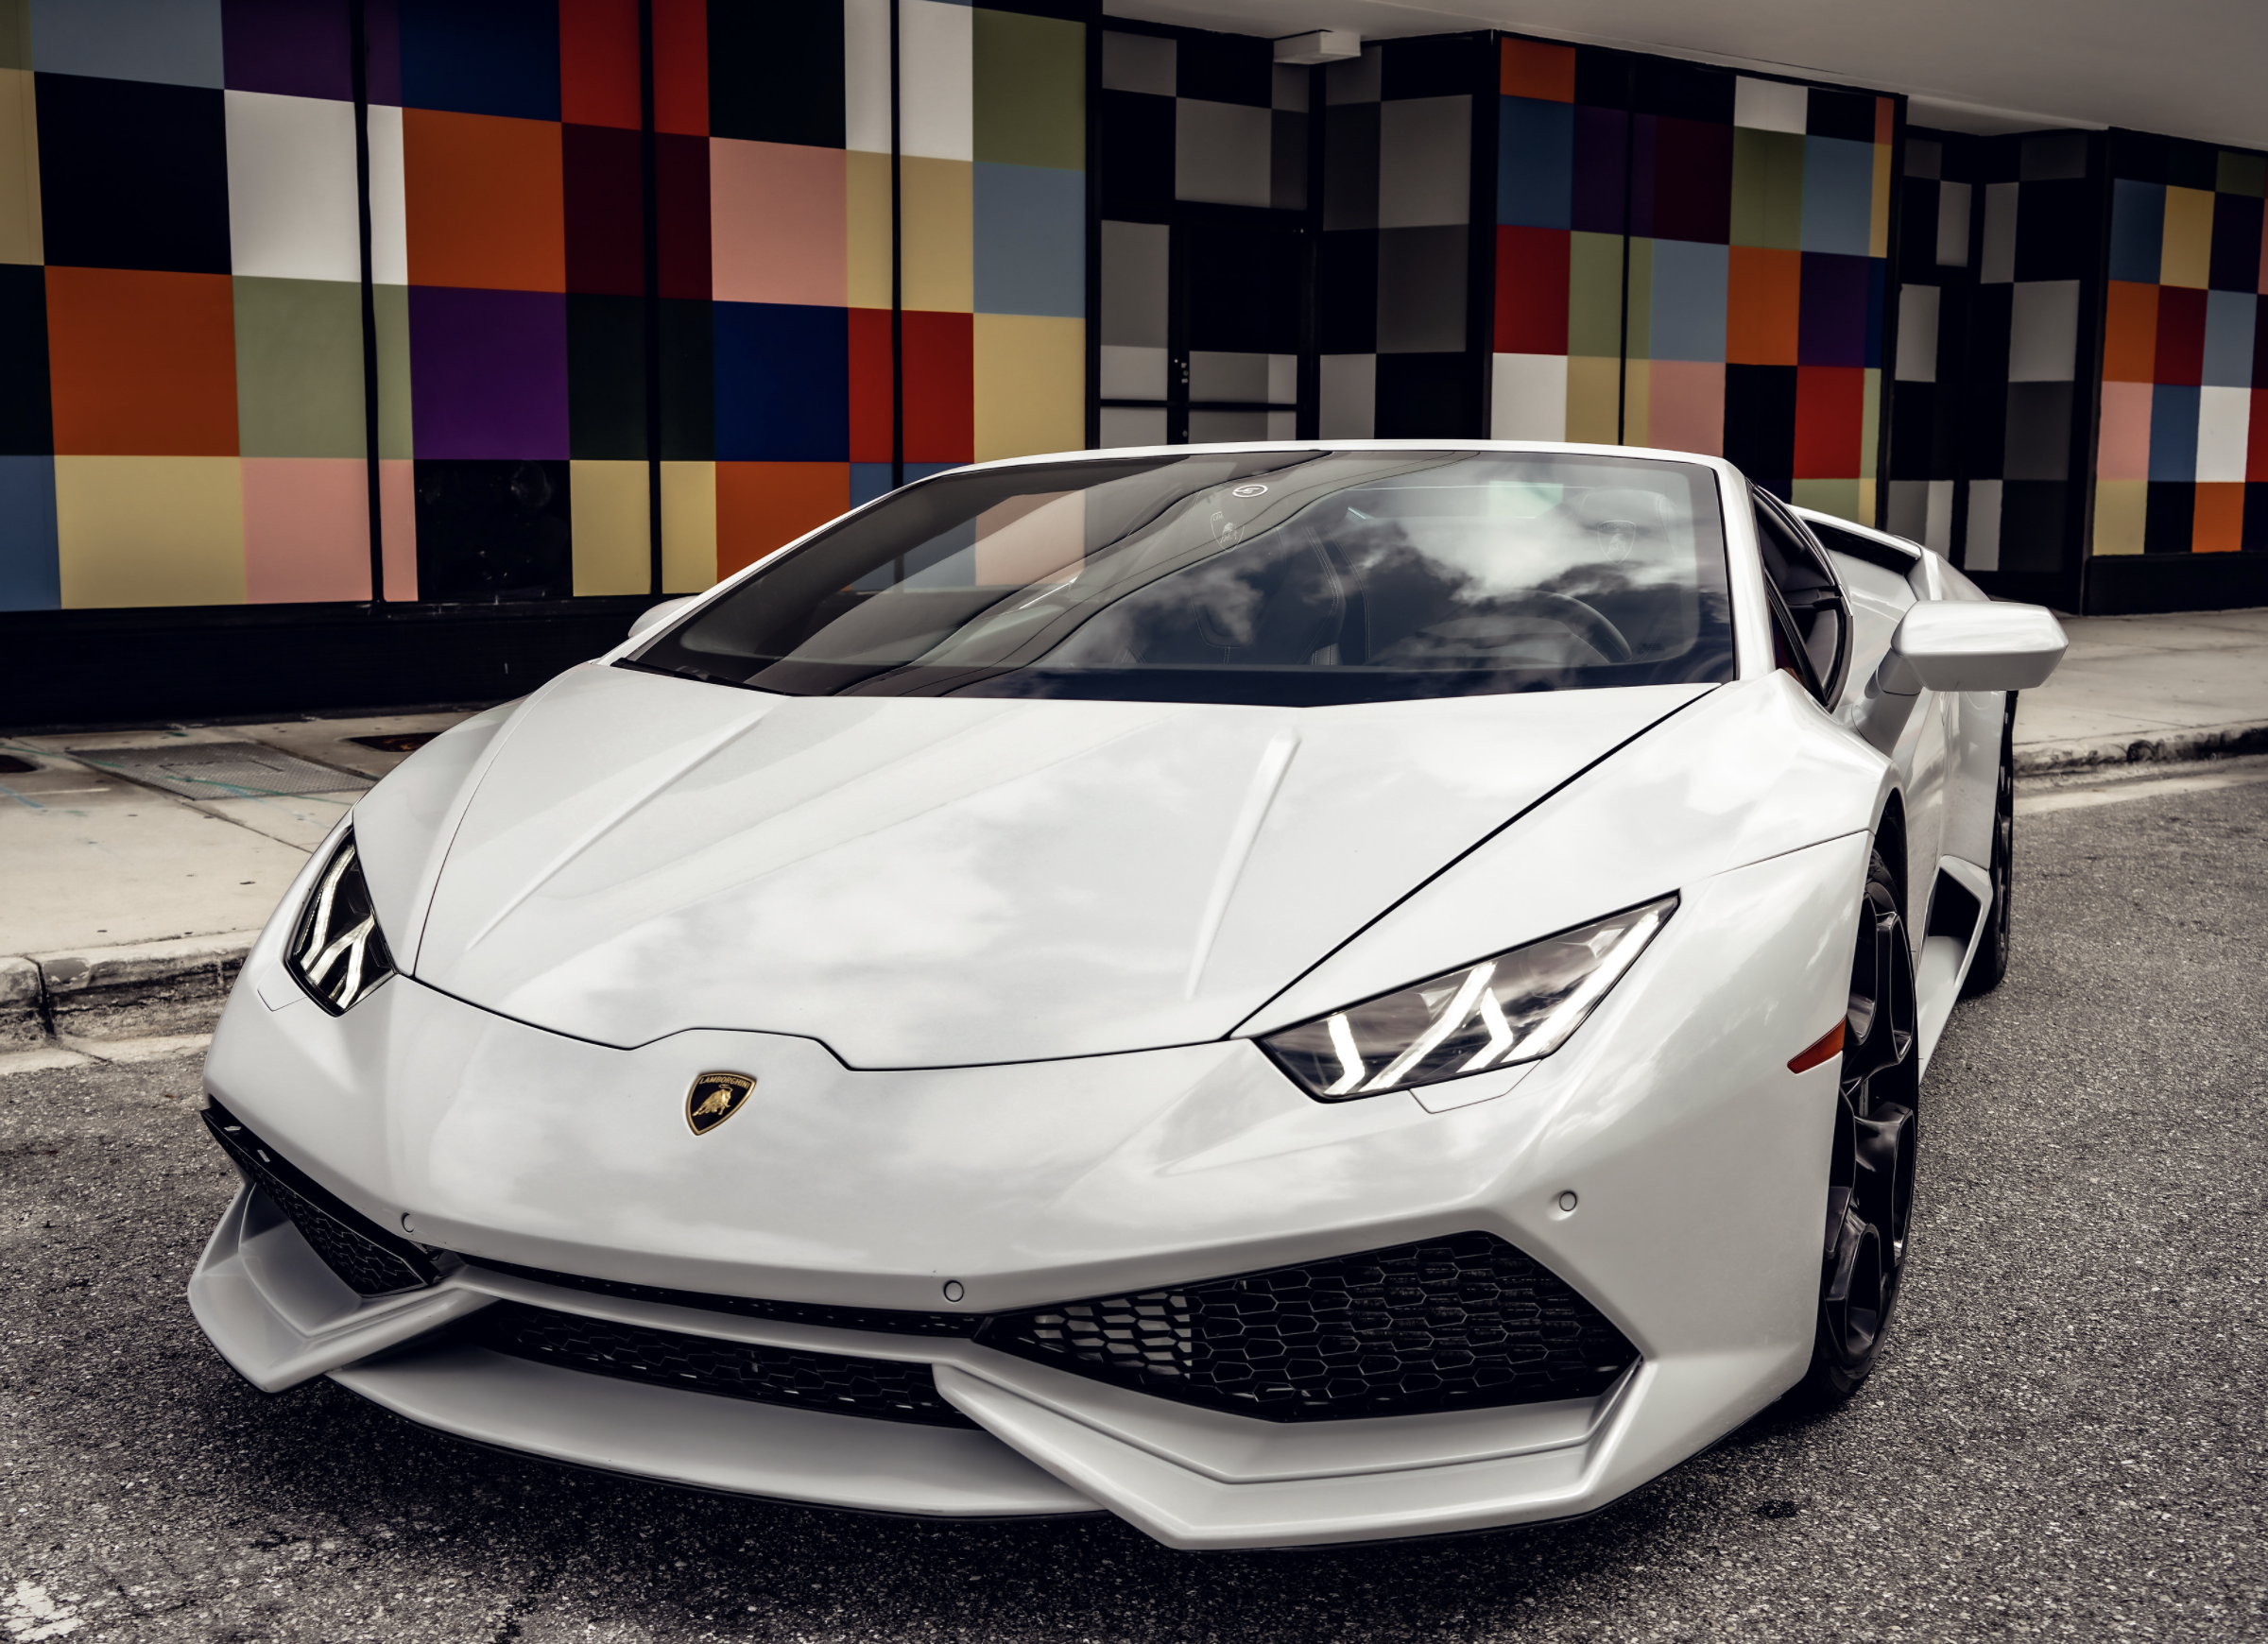 Image #1 of our  LAMBORGHINI HURACAN WHITE    In Miami Fort Lauderdale Palm Beach South Florida